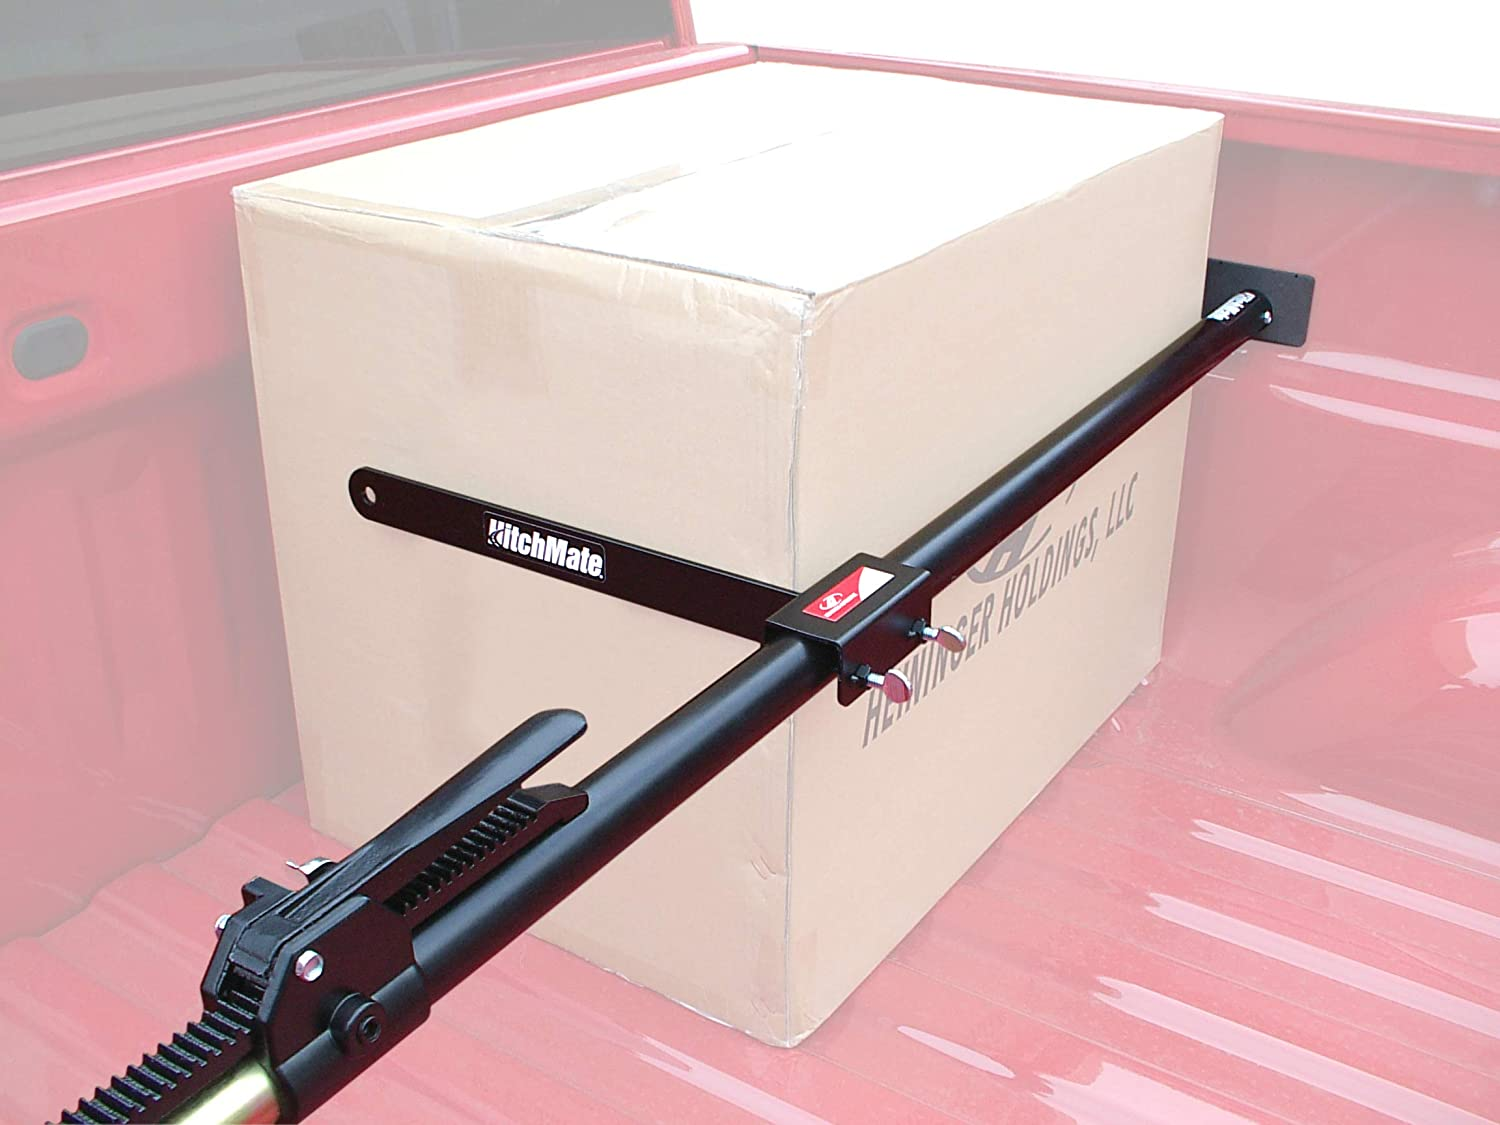 HitchMate Cargo Stabilizer Bar Full Size 59 to 73 with StabiLoad Divider Bar and Cargo Net